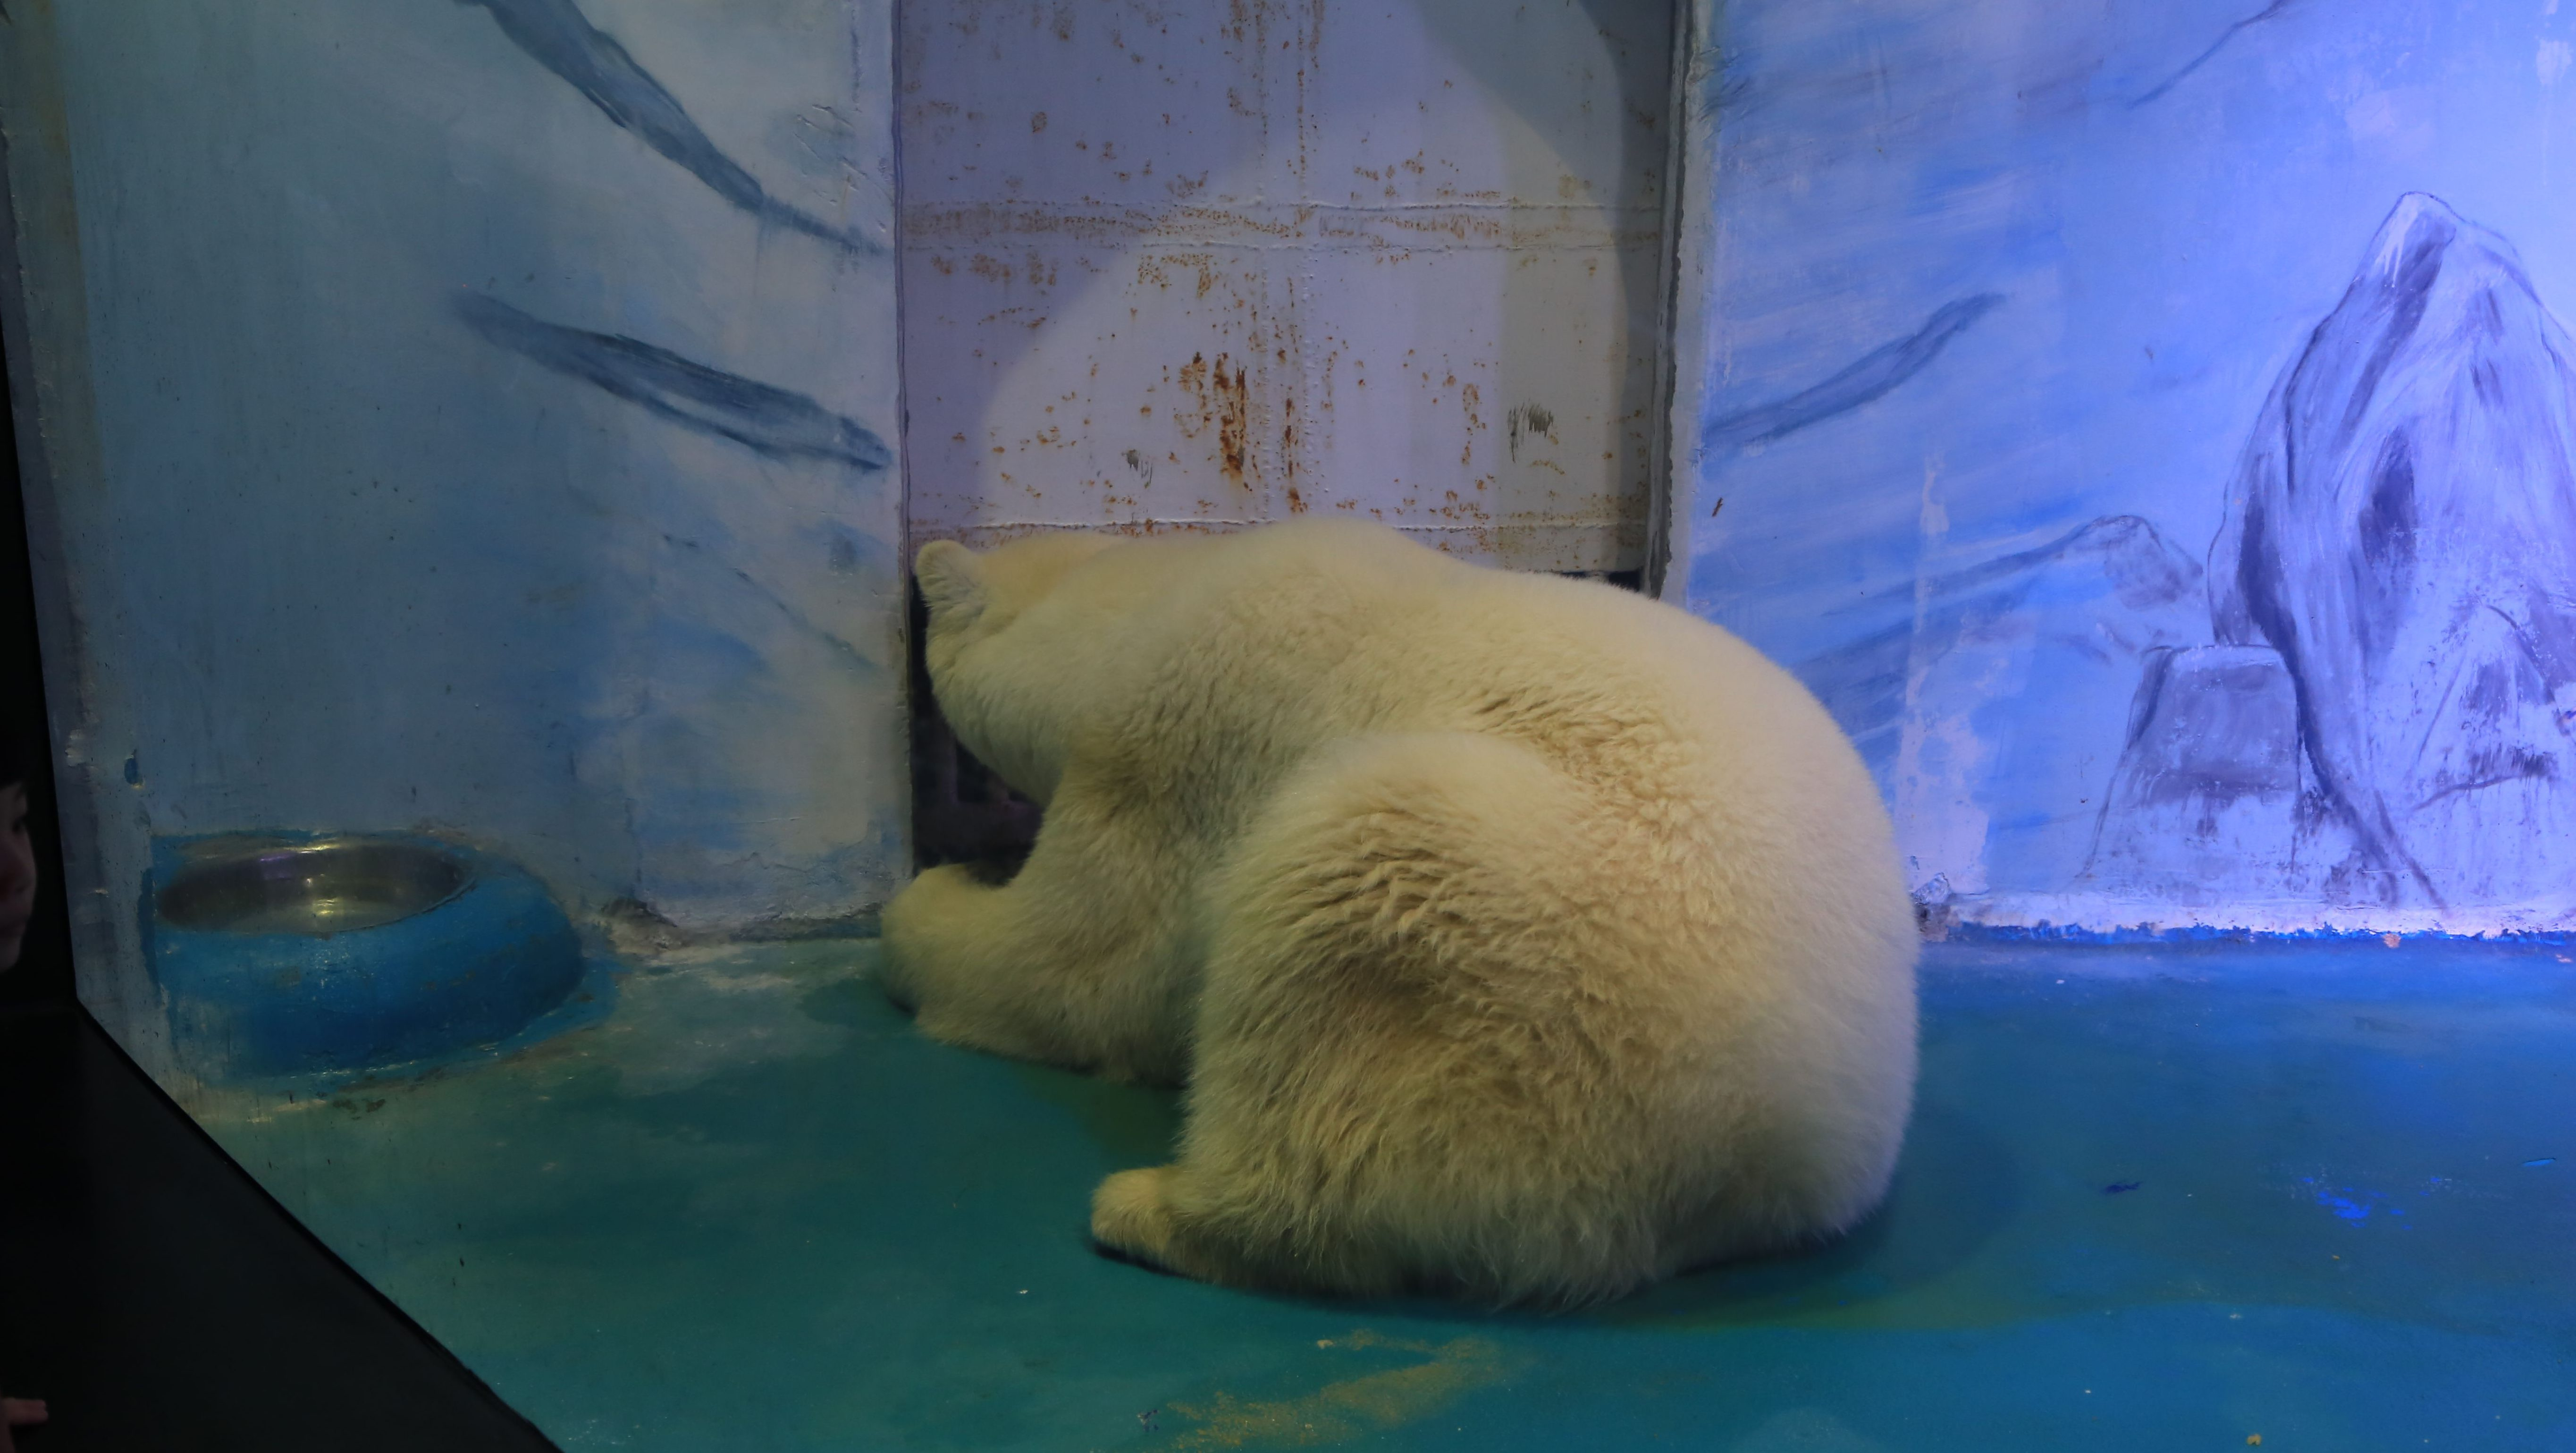 Shown here is a polar bear who has been put on display in Grandview Shopping Mall in Guangzhou, China. The animals in this mall are housed in tiny, inhumane enclosures with no enrichment.